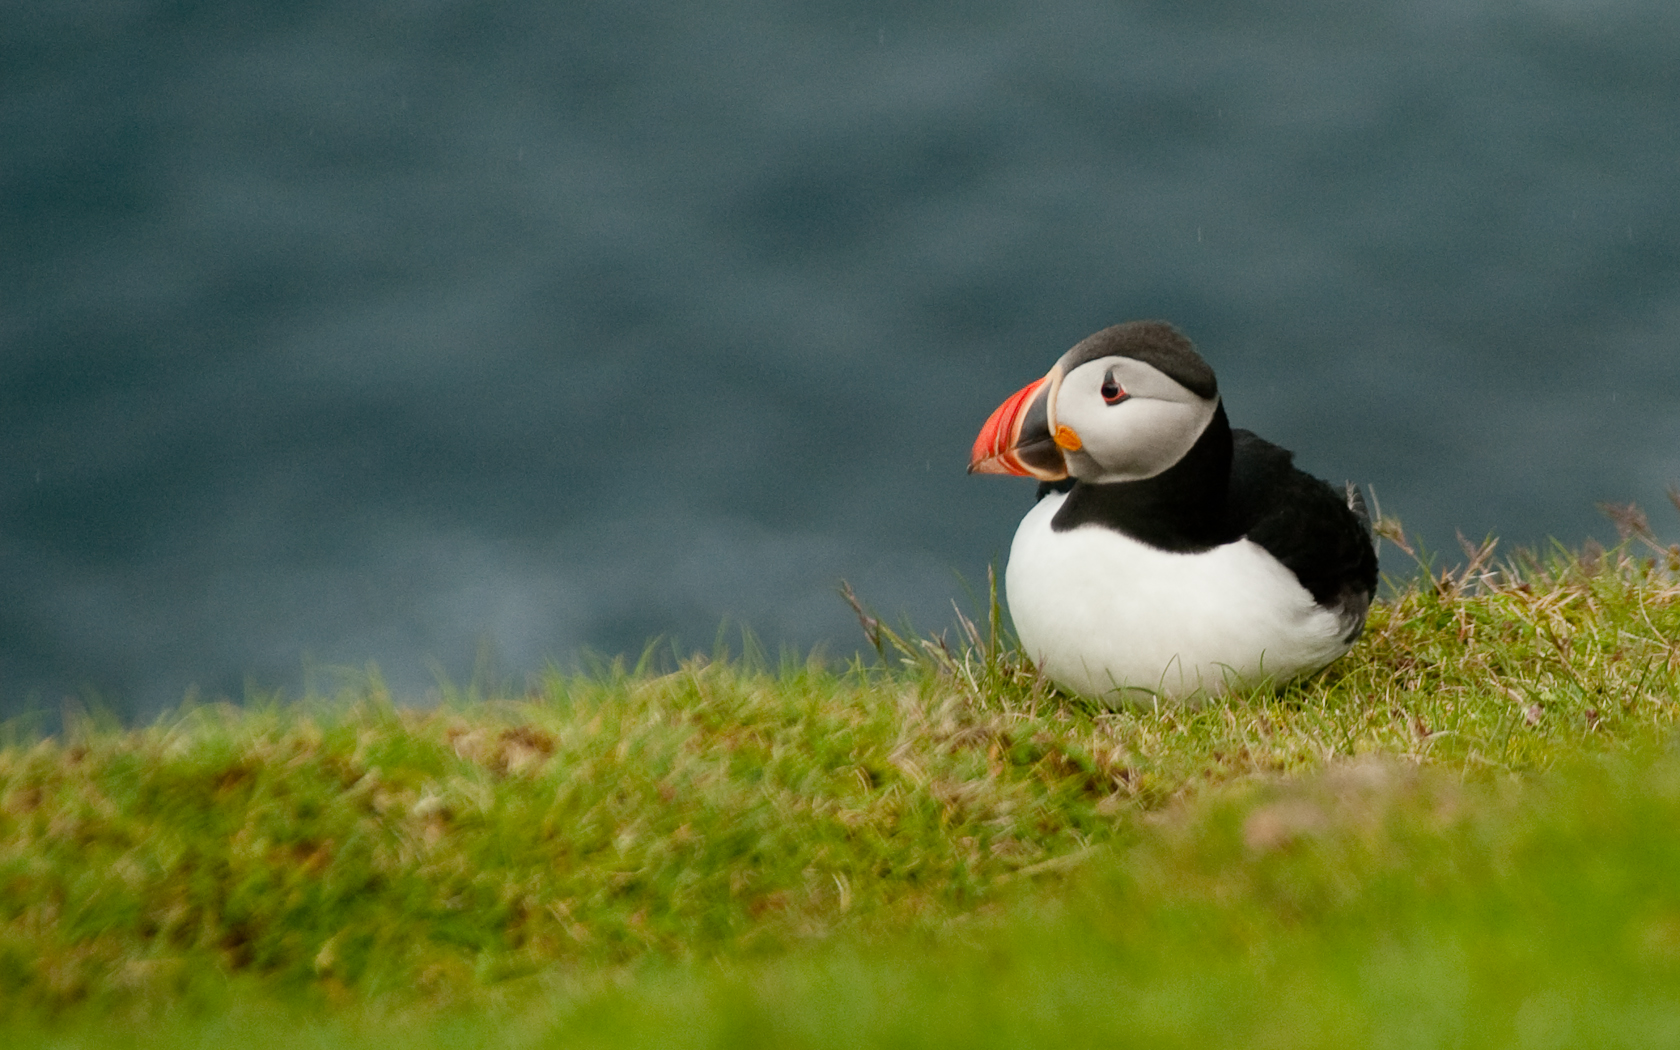 Cute Baby Animal Wallpapers Desktop 26 Stunning Hd Puffin Bird Wallpapers Hdwallsource Com